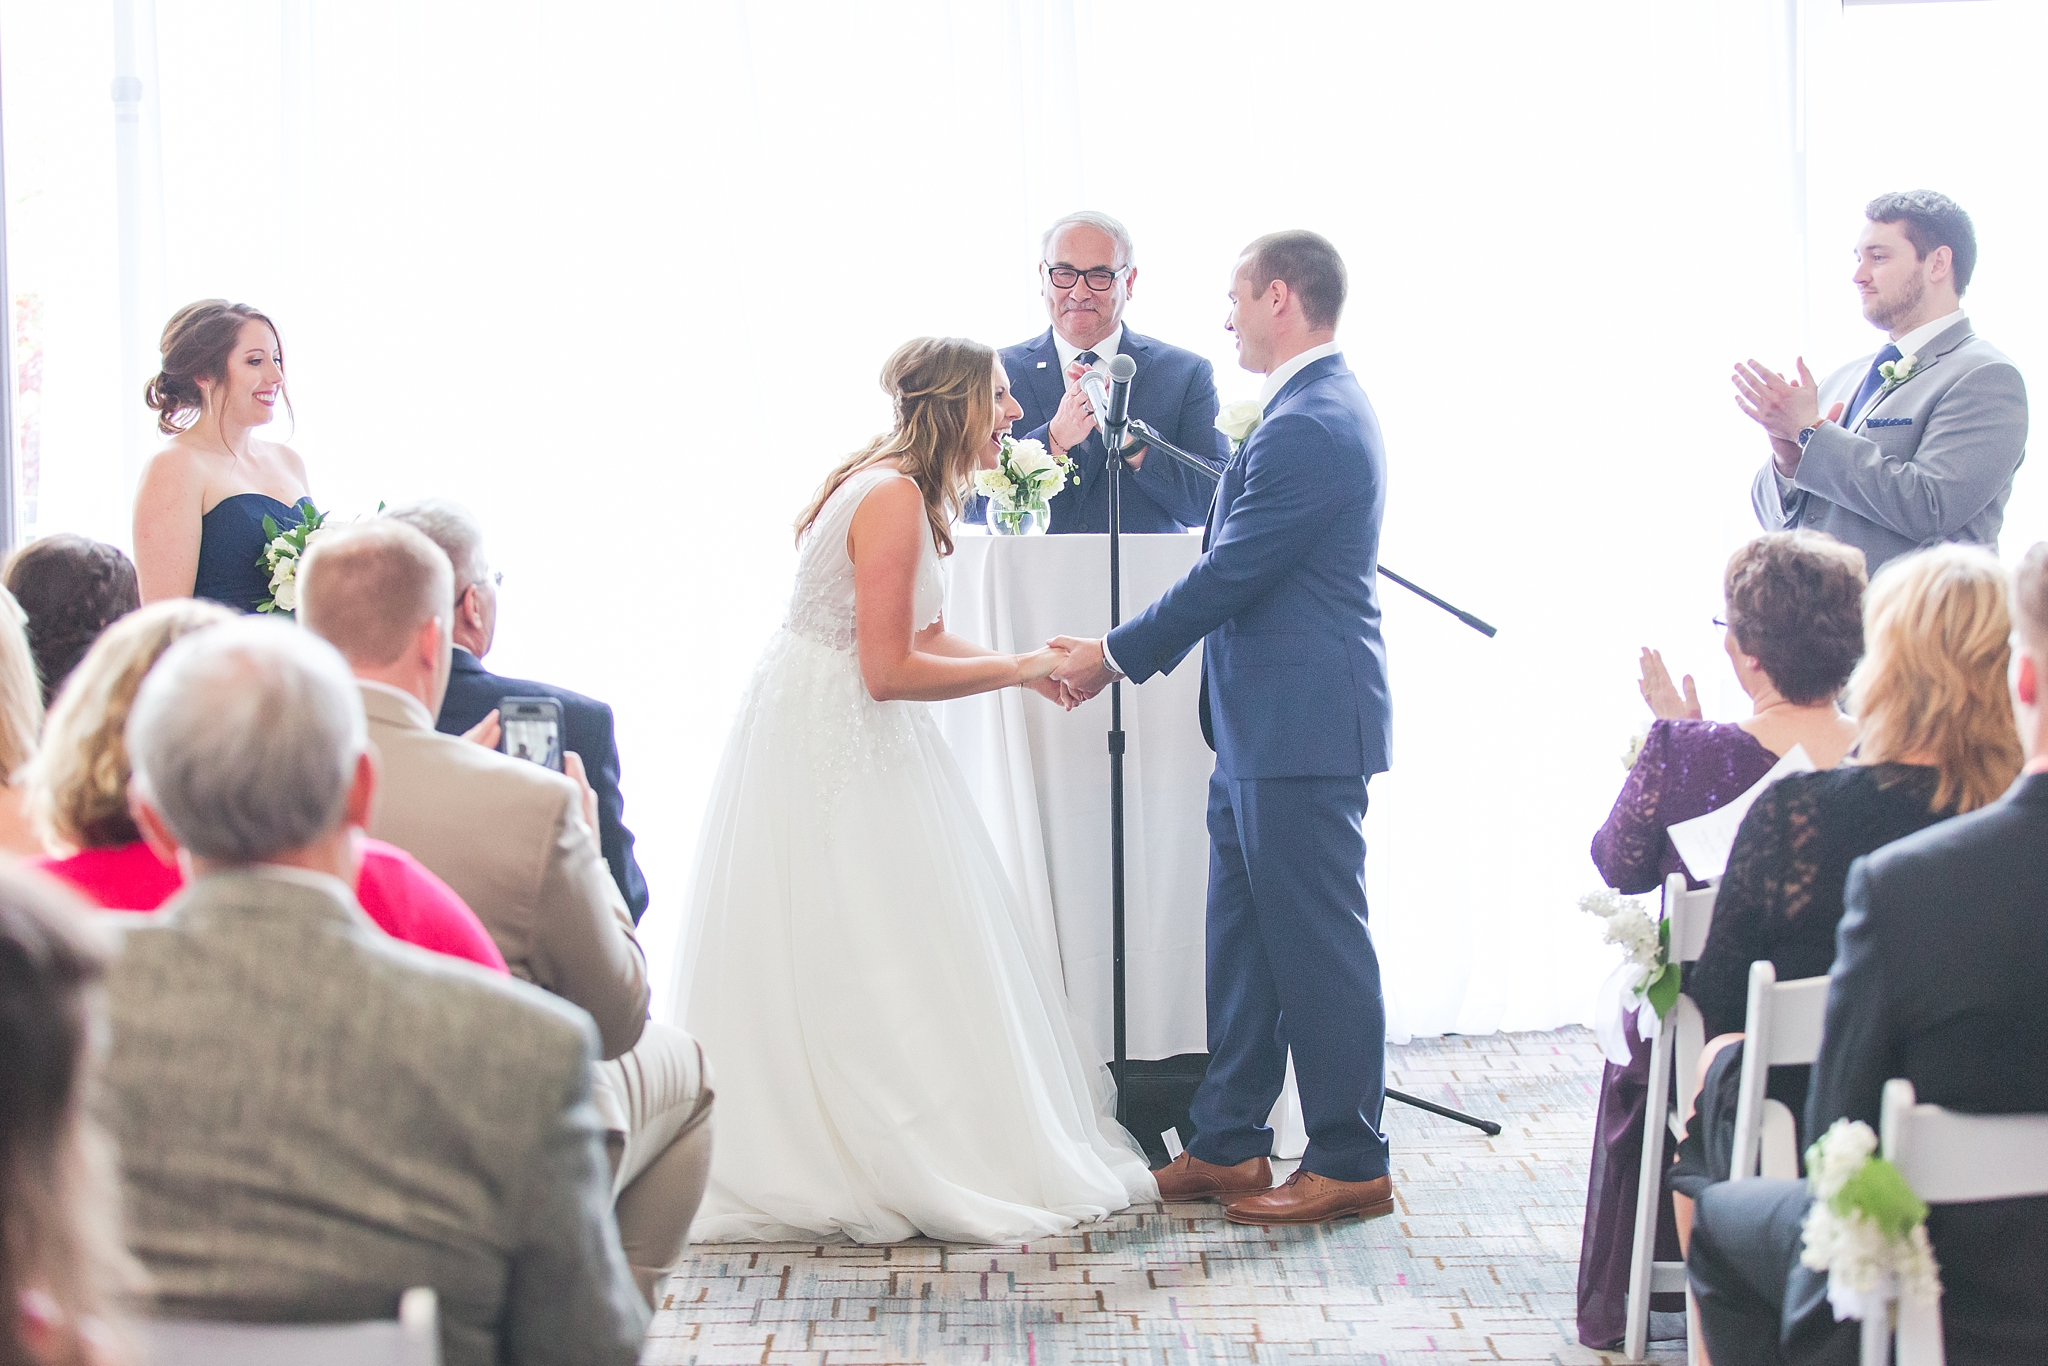 joyful-candid-laid-back-wedding-photos-in-ann-arbor-michigan-and-at-the-eagle-crest-golf-resort-by-courtney-carolyn-photography_0083.jpg